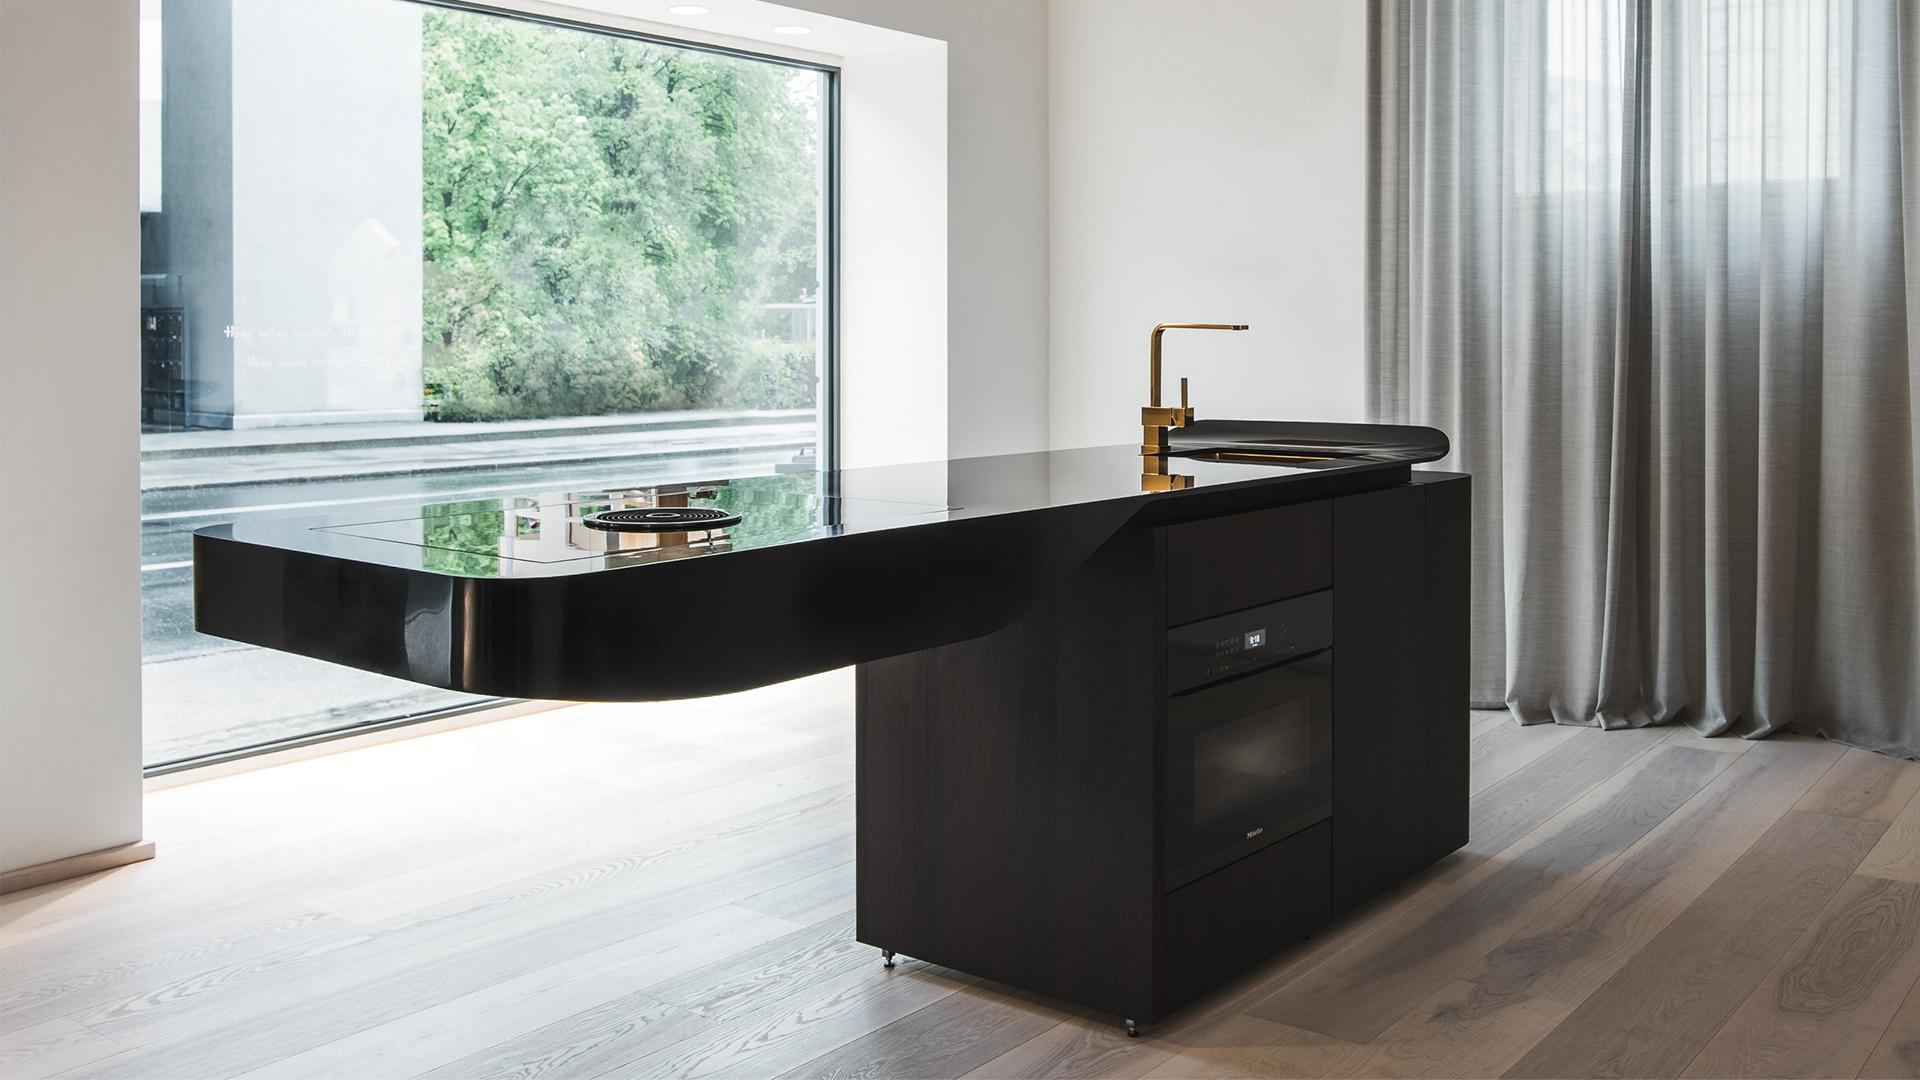 CLEAR THE STAGE FOR THE KITCHEN SOLO